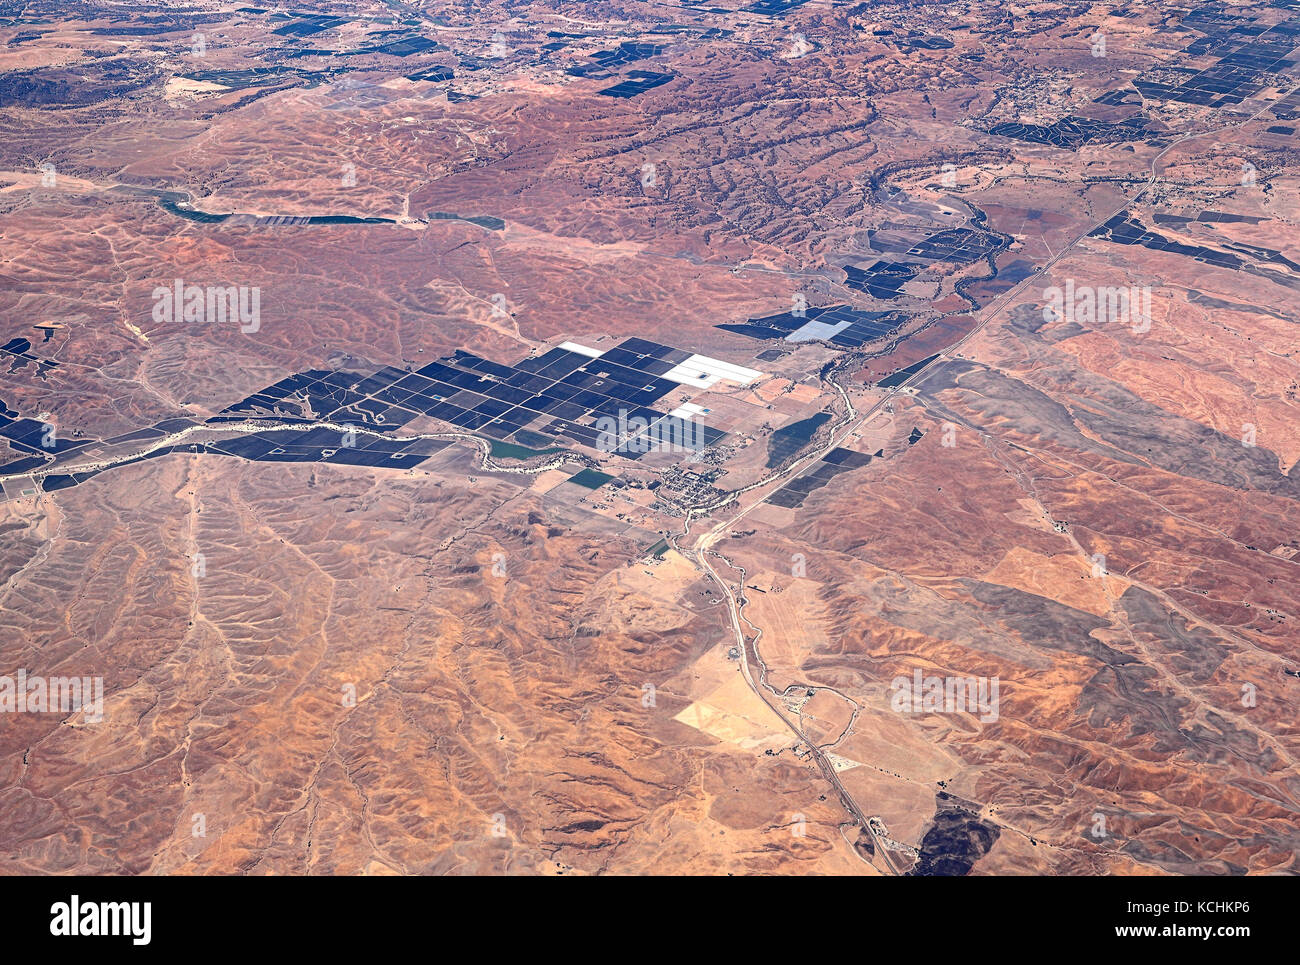 Aerial view of Agriculture in the Desert - Stock Image